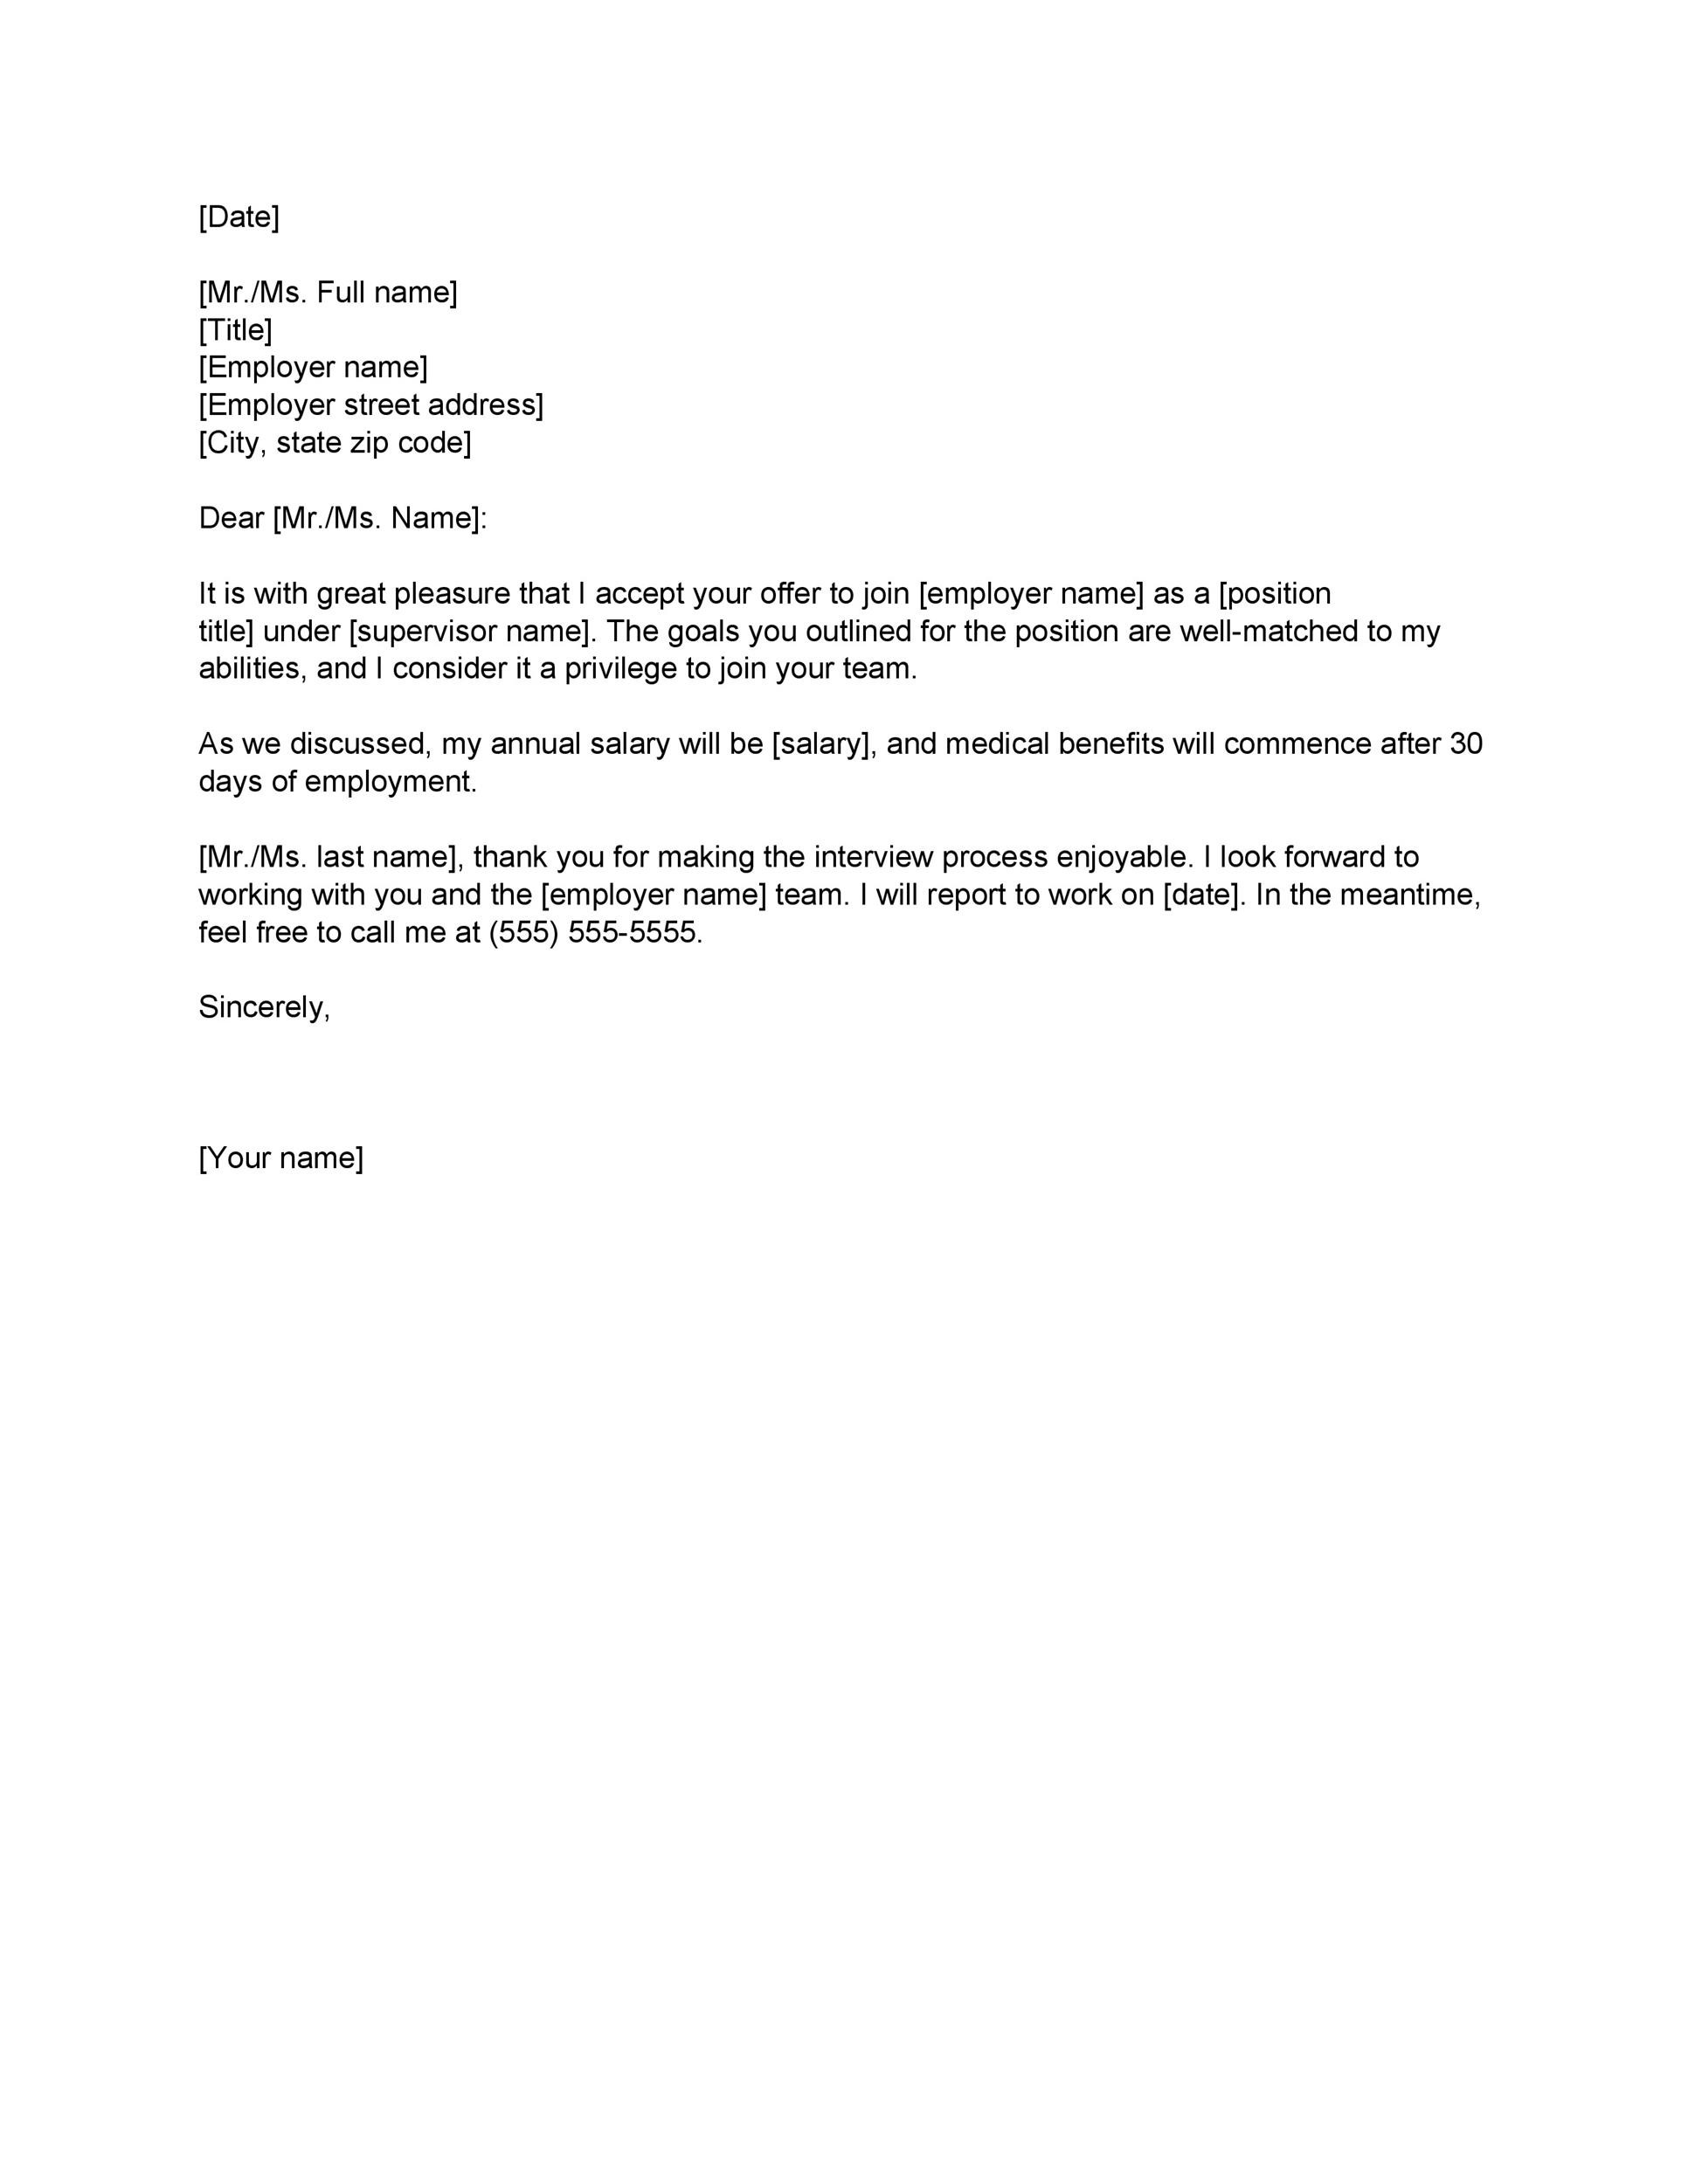 Job Offer Letter Content | 40 Professional Job Offer Acceptance Letter Email Templates